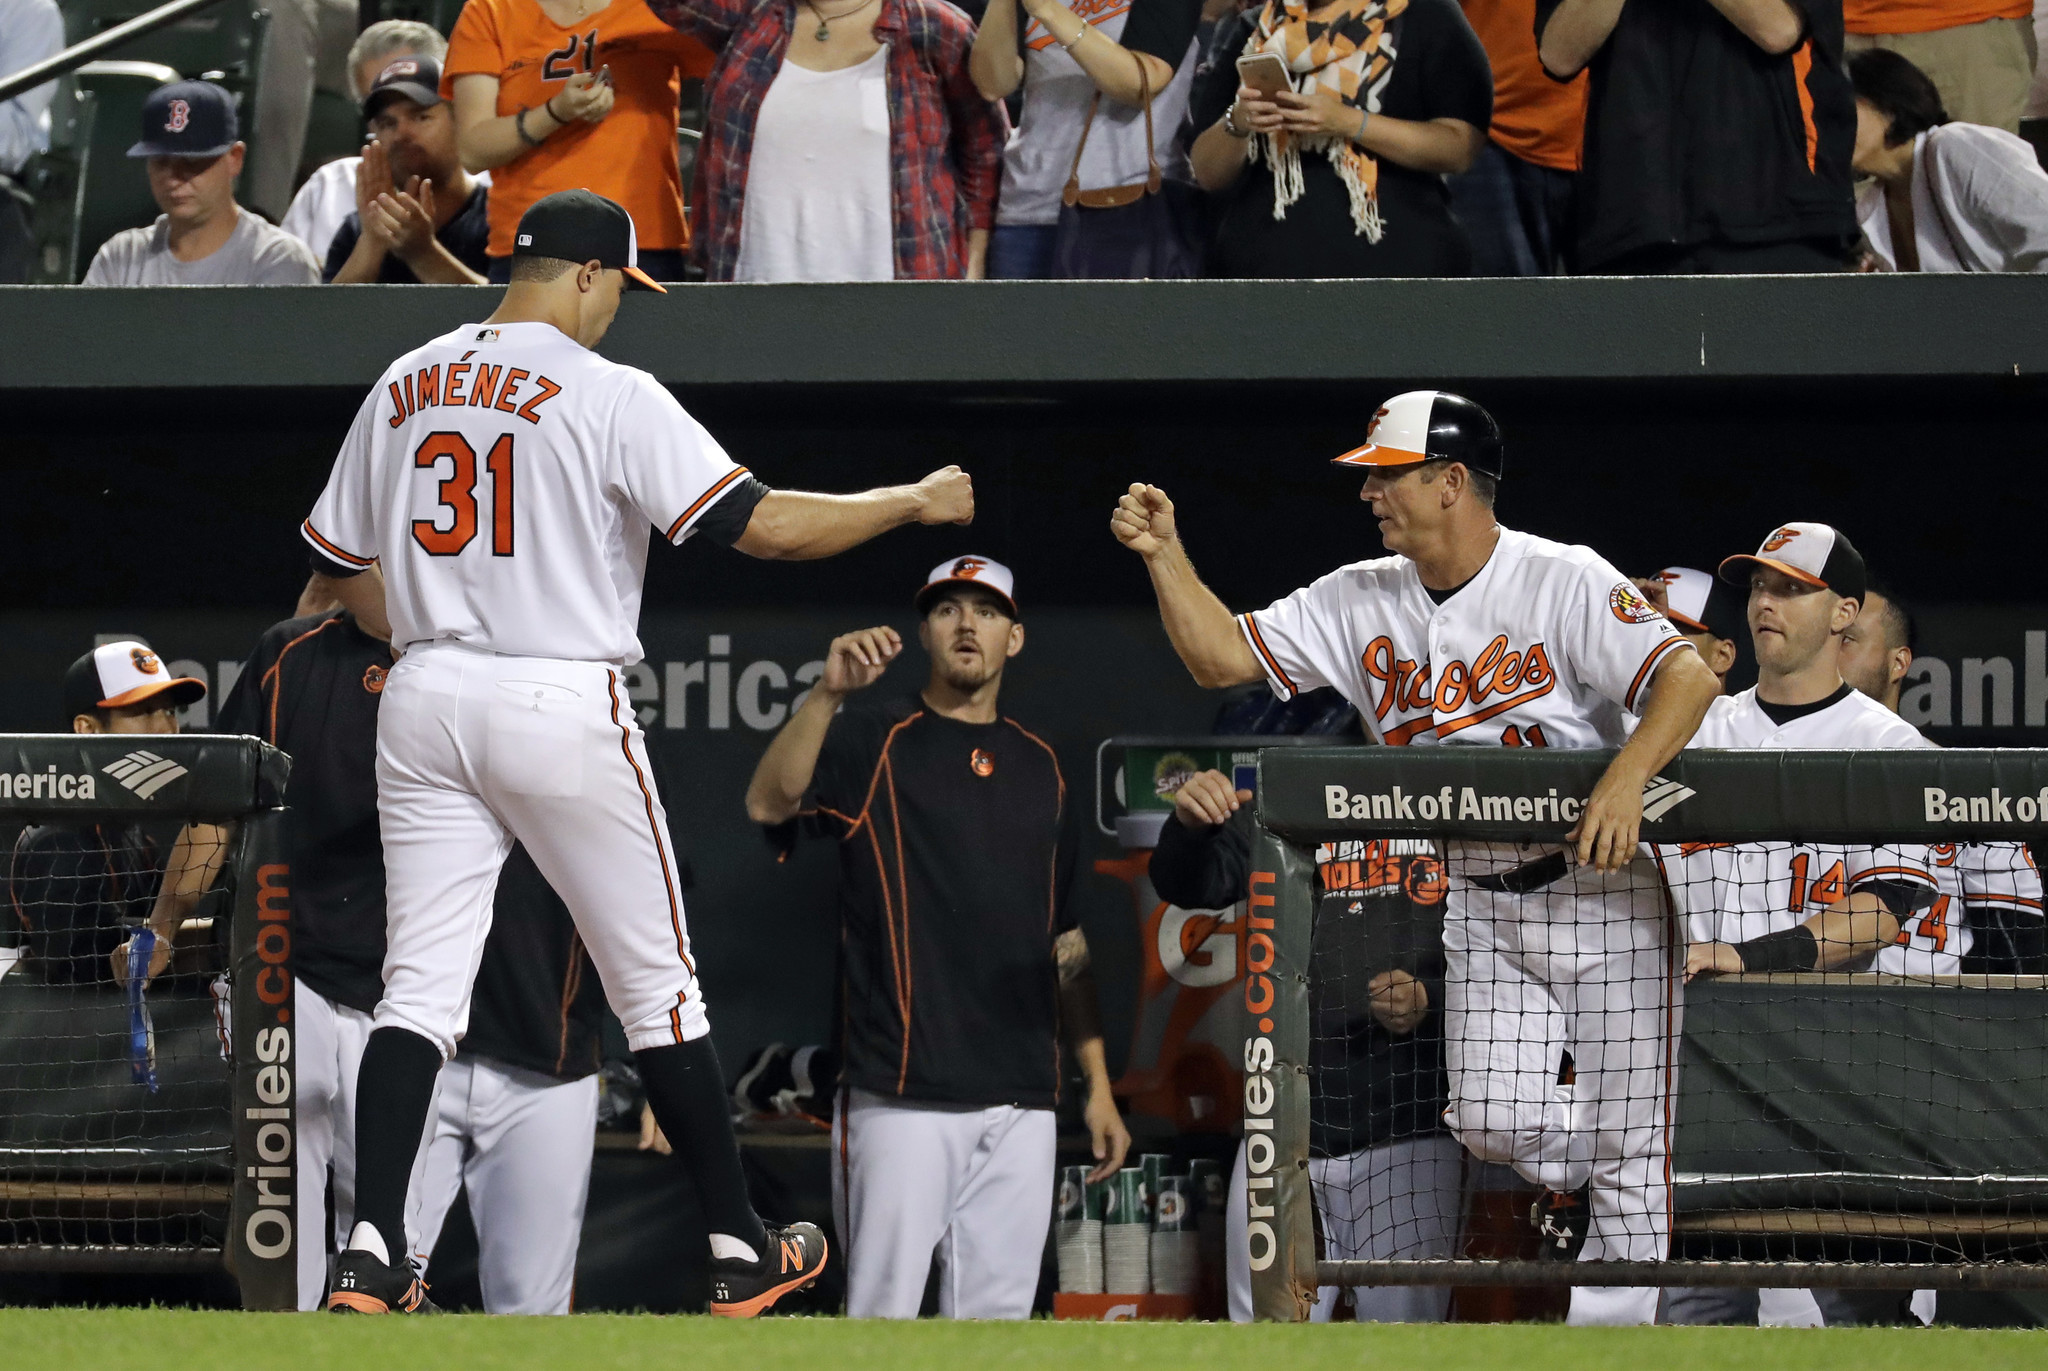 Bal-the-indian-summer-of-ubaldo-jimenez-continued-but-the-orioles-couldn-t-get-him-a-win-20160921